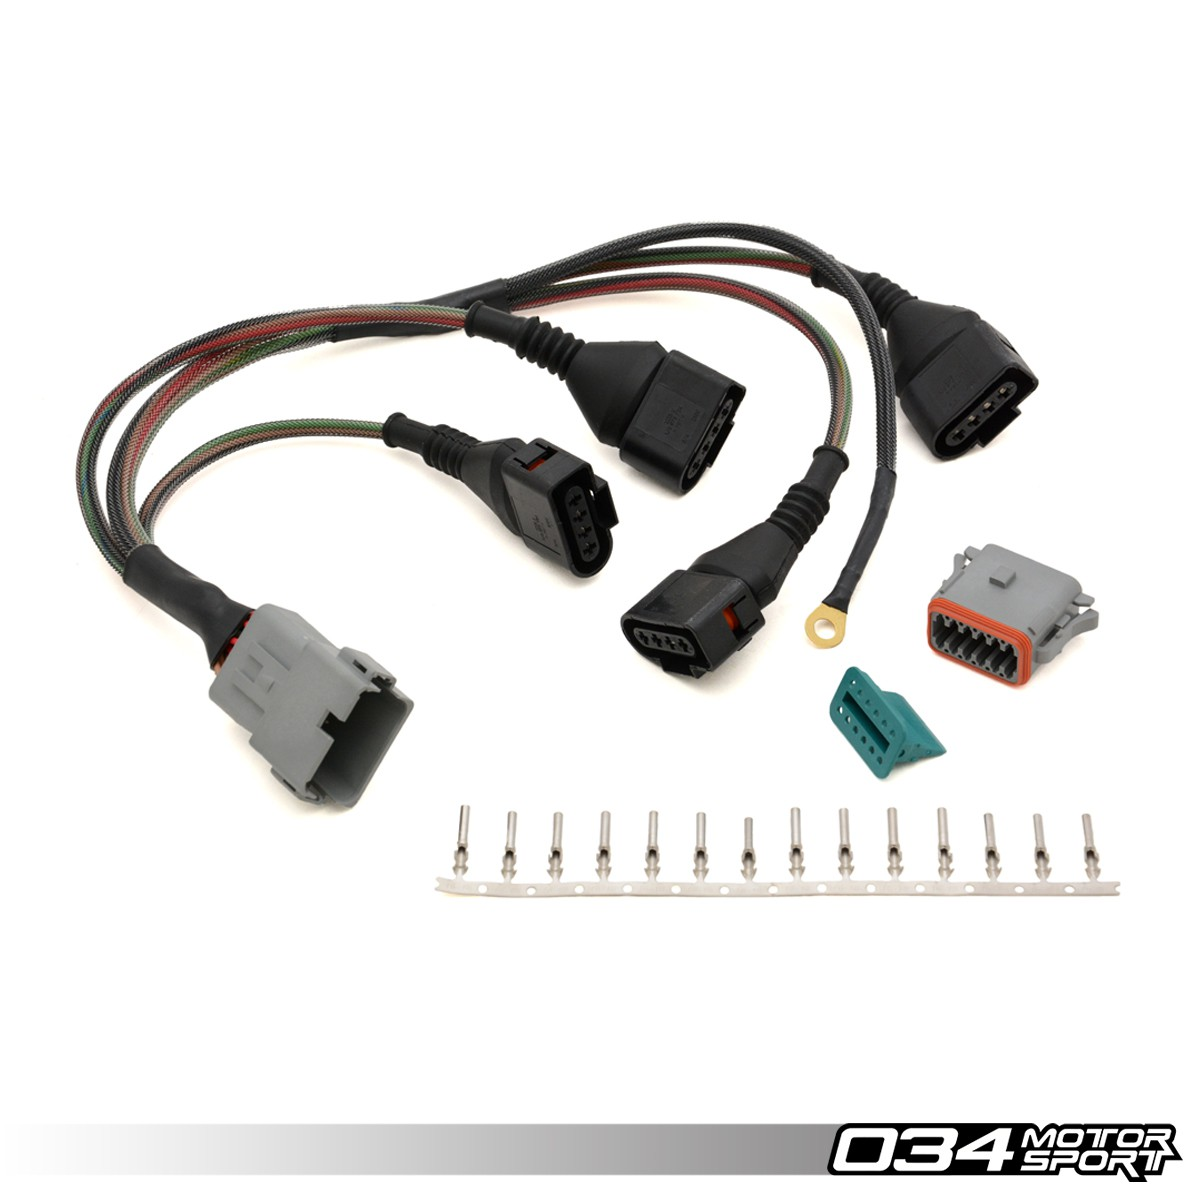 repair update harness audi volkswagen 18t with 4 wire coils 034motorsport 034 701 0004 2 repair update harness, audi volkswagen 1 8t with 4 wire coils how to repair wire harness connector at virtualis.co